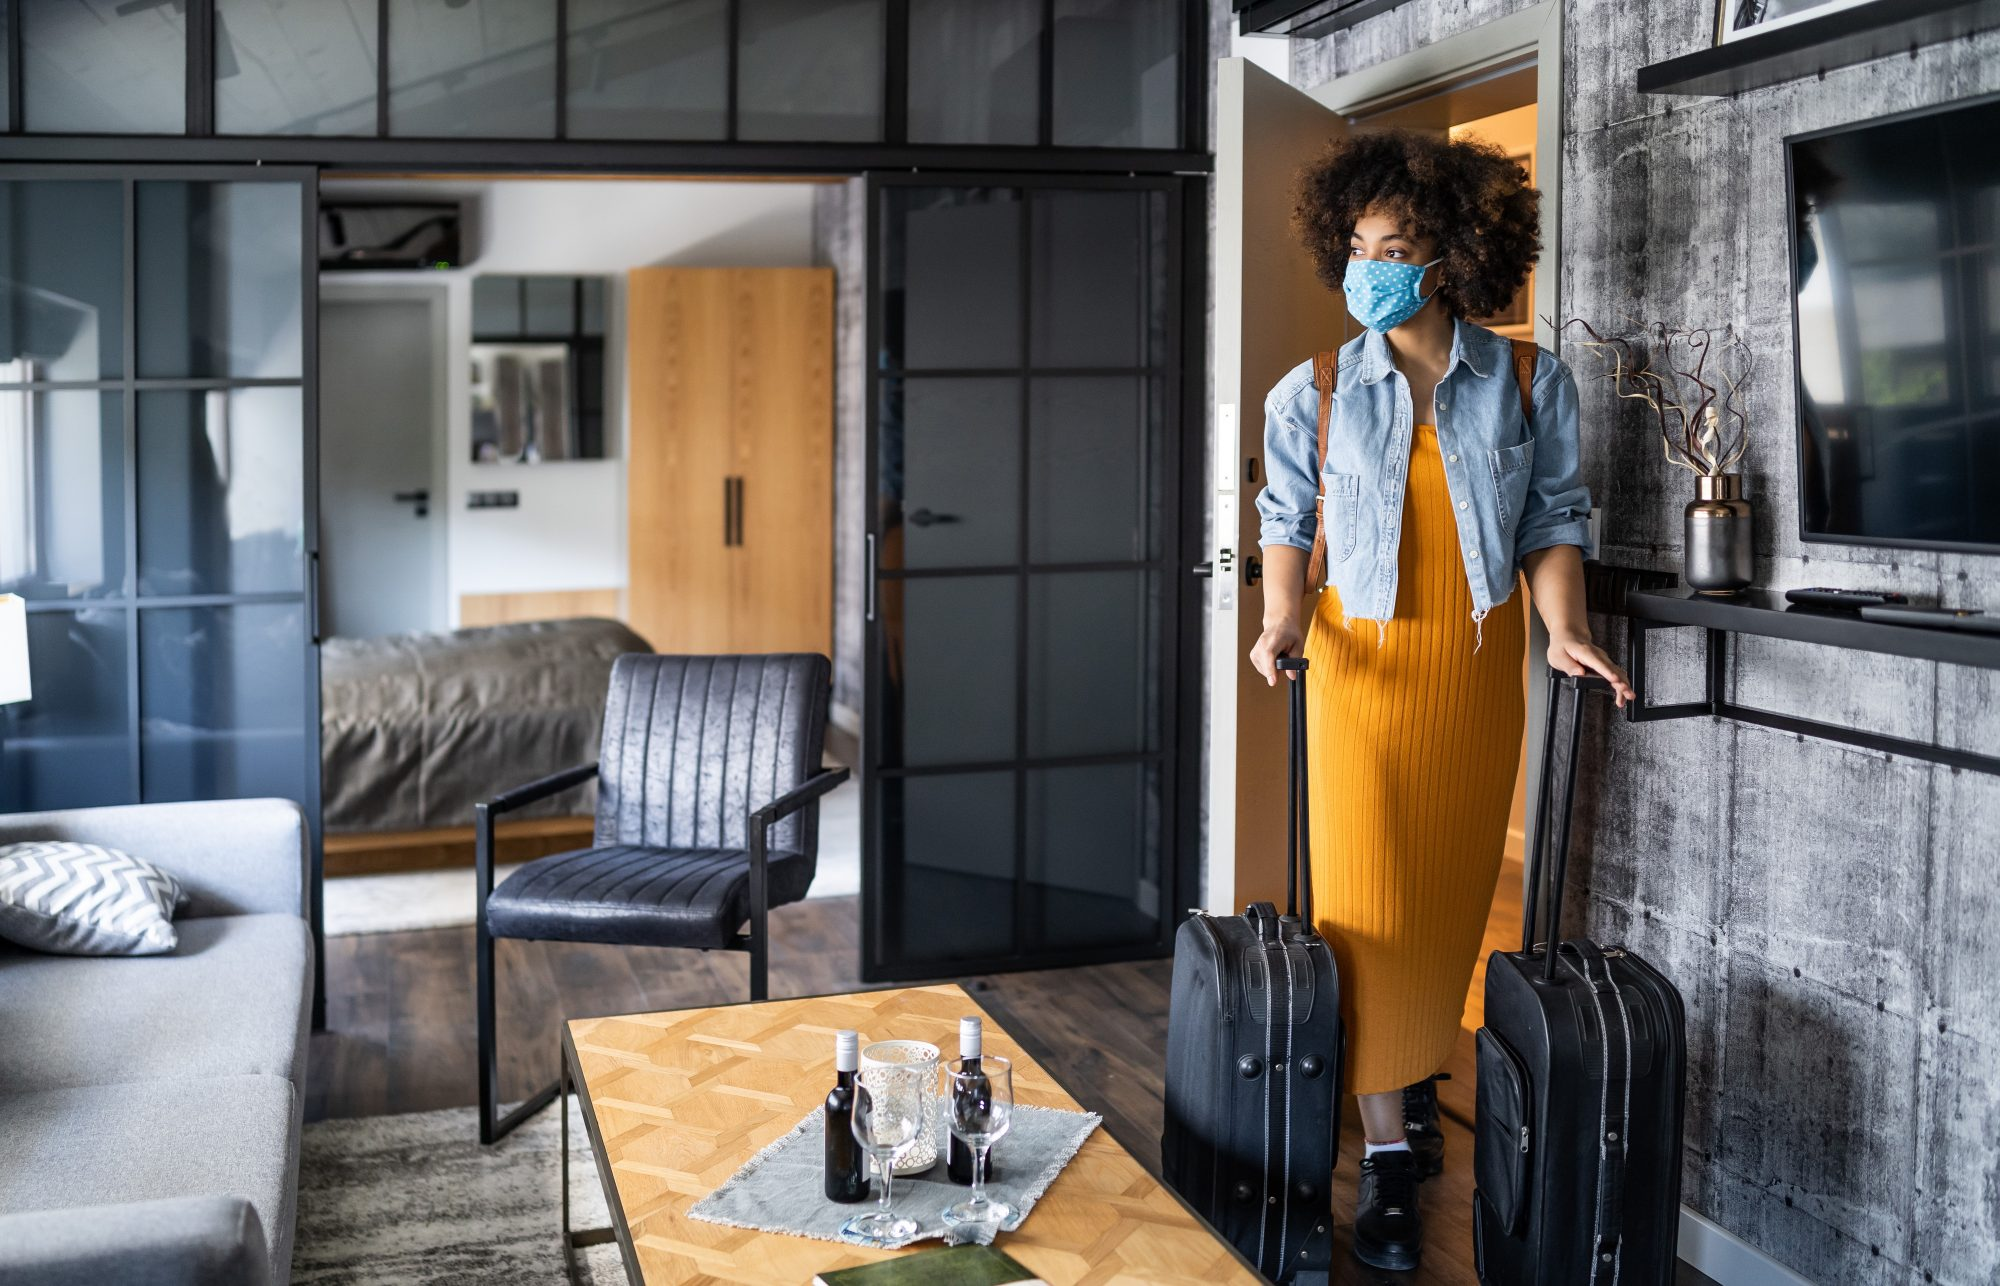 woman wearing a protective face mask arriving in hotel room